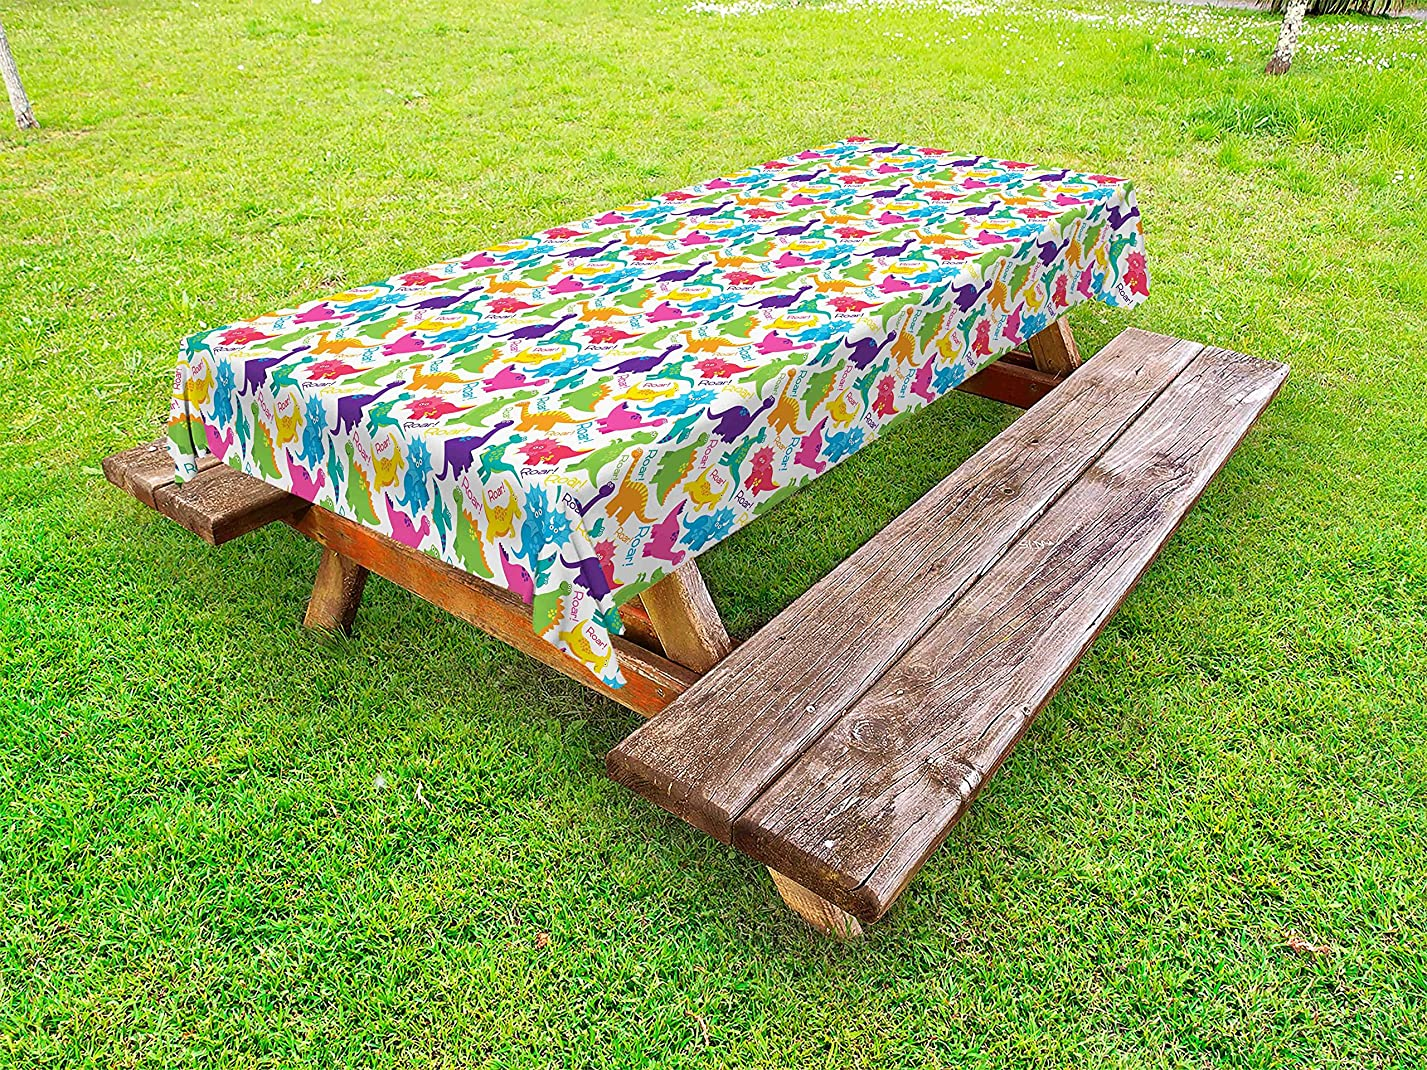 Ambesonne Jurassic Outdoor Tablecloth, Dinosaur Archaeological Historical Monster Wild Creature Cartoon Children Print, Decorative Washable Picnic Table Cloth, 58 X 84 inches, Multicolor ie11676014